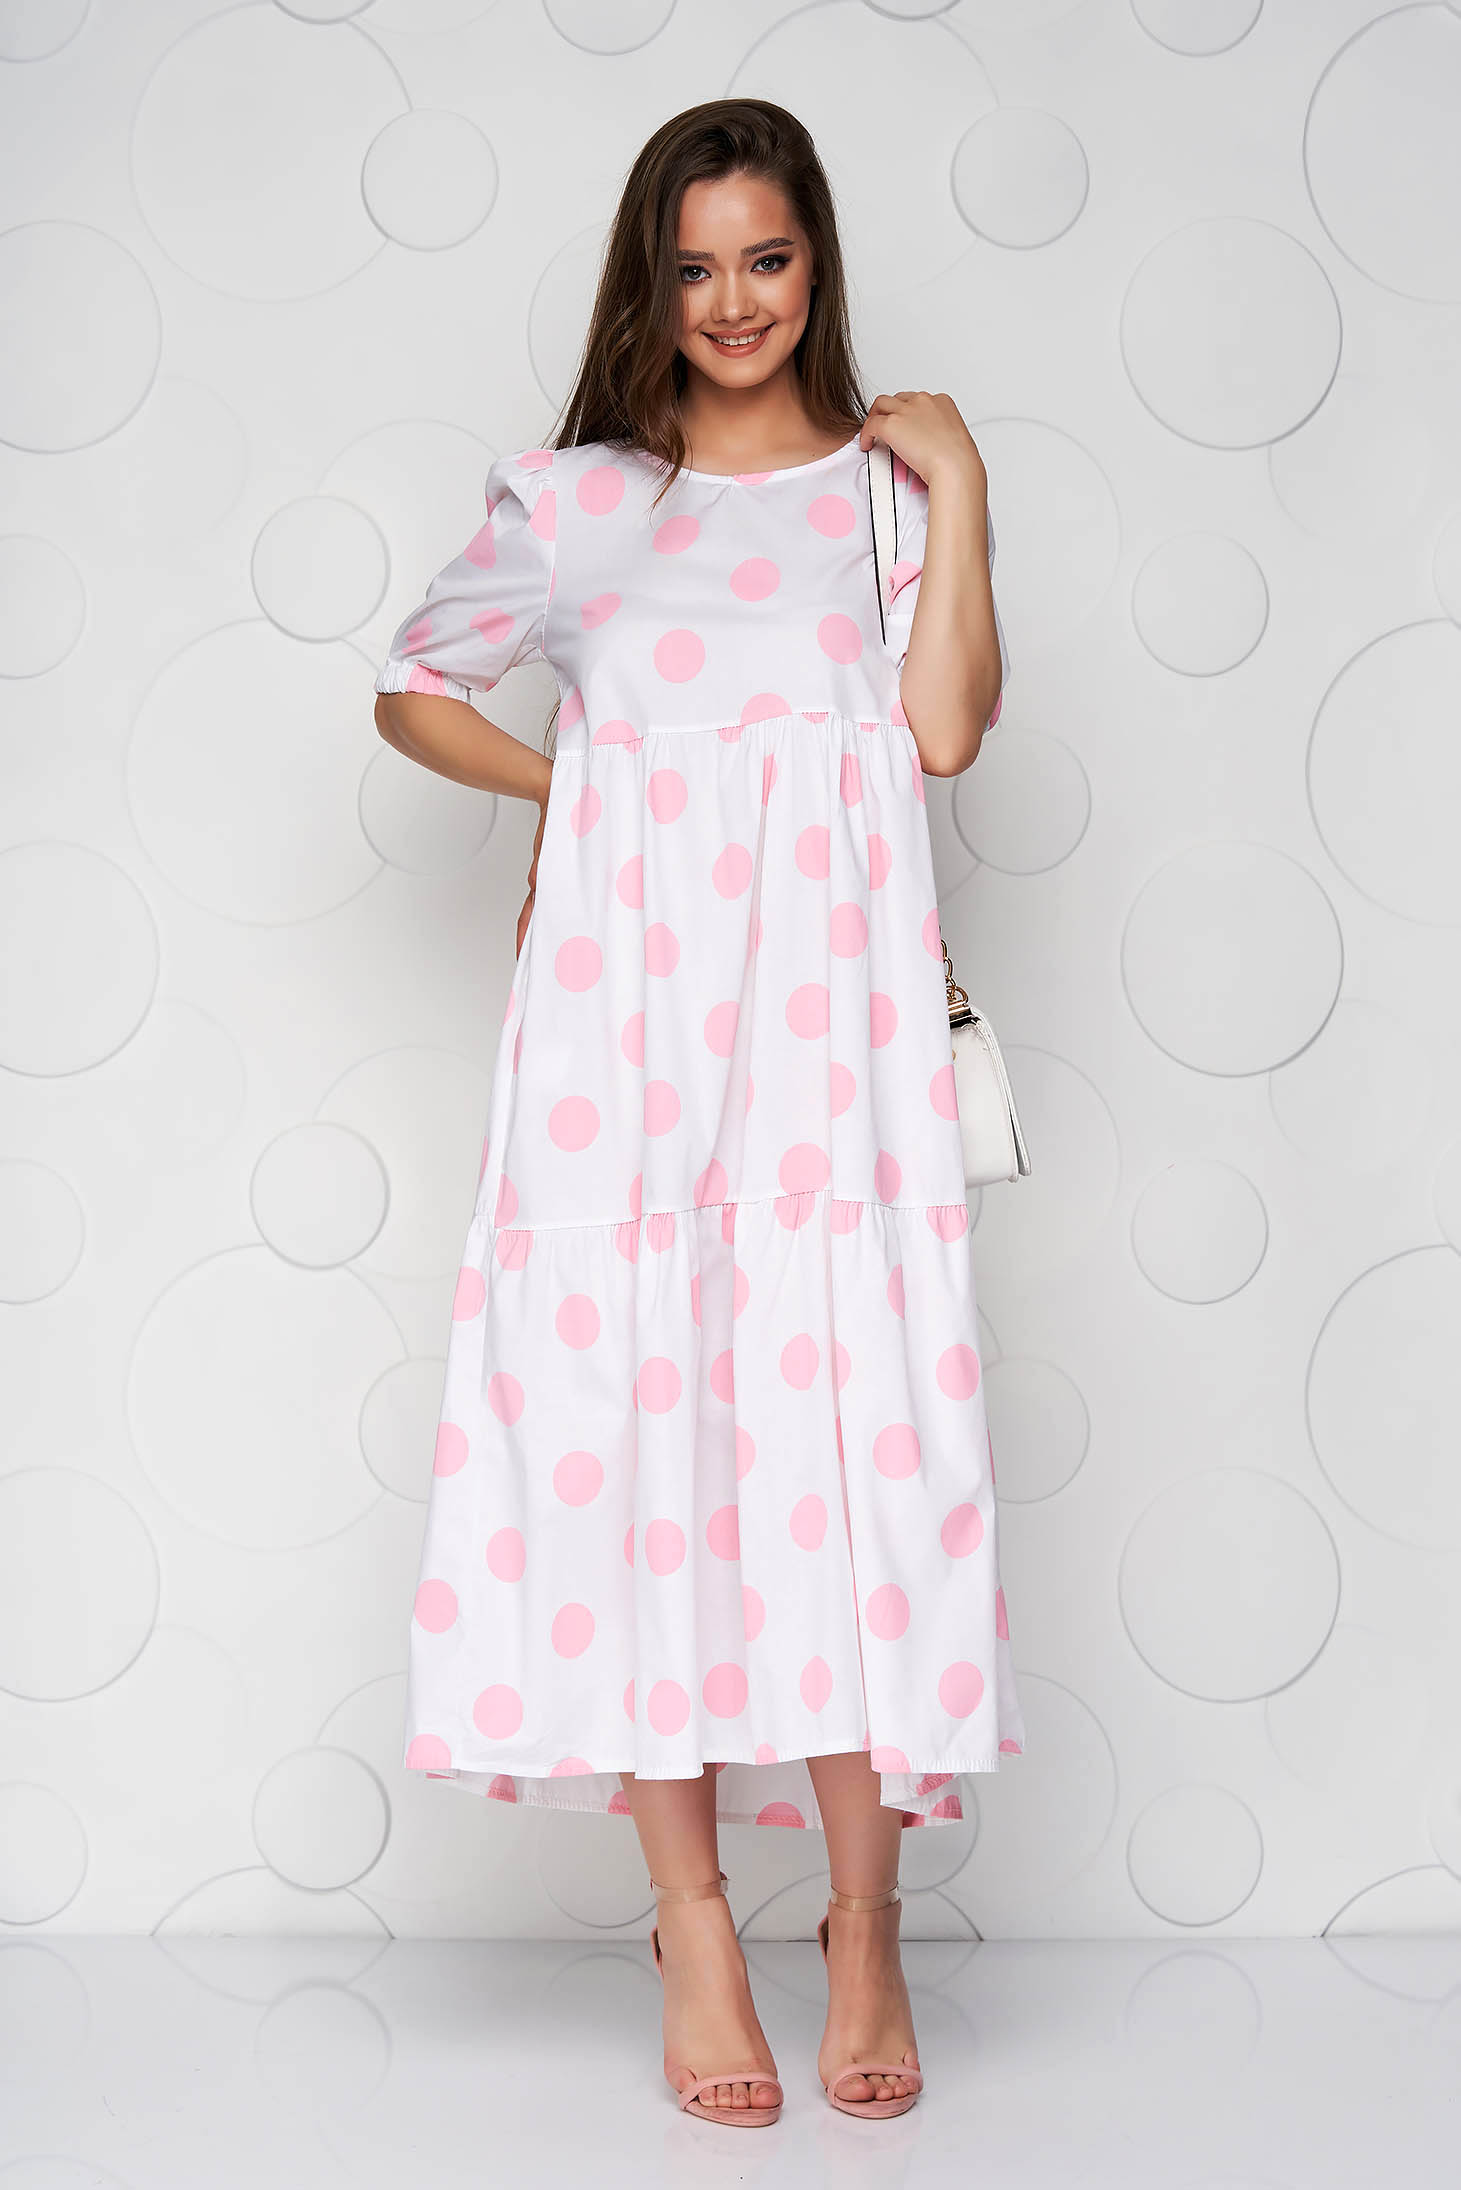 Pink dress dots print loose fit with ruffle details airy fabric